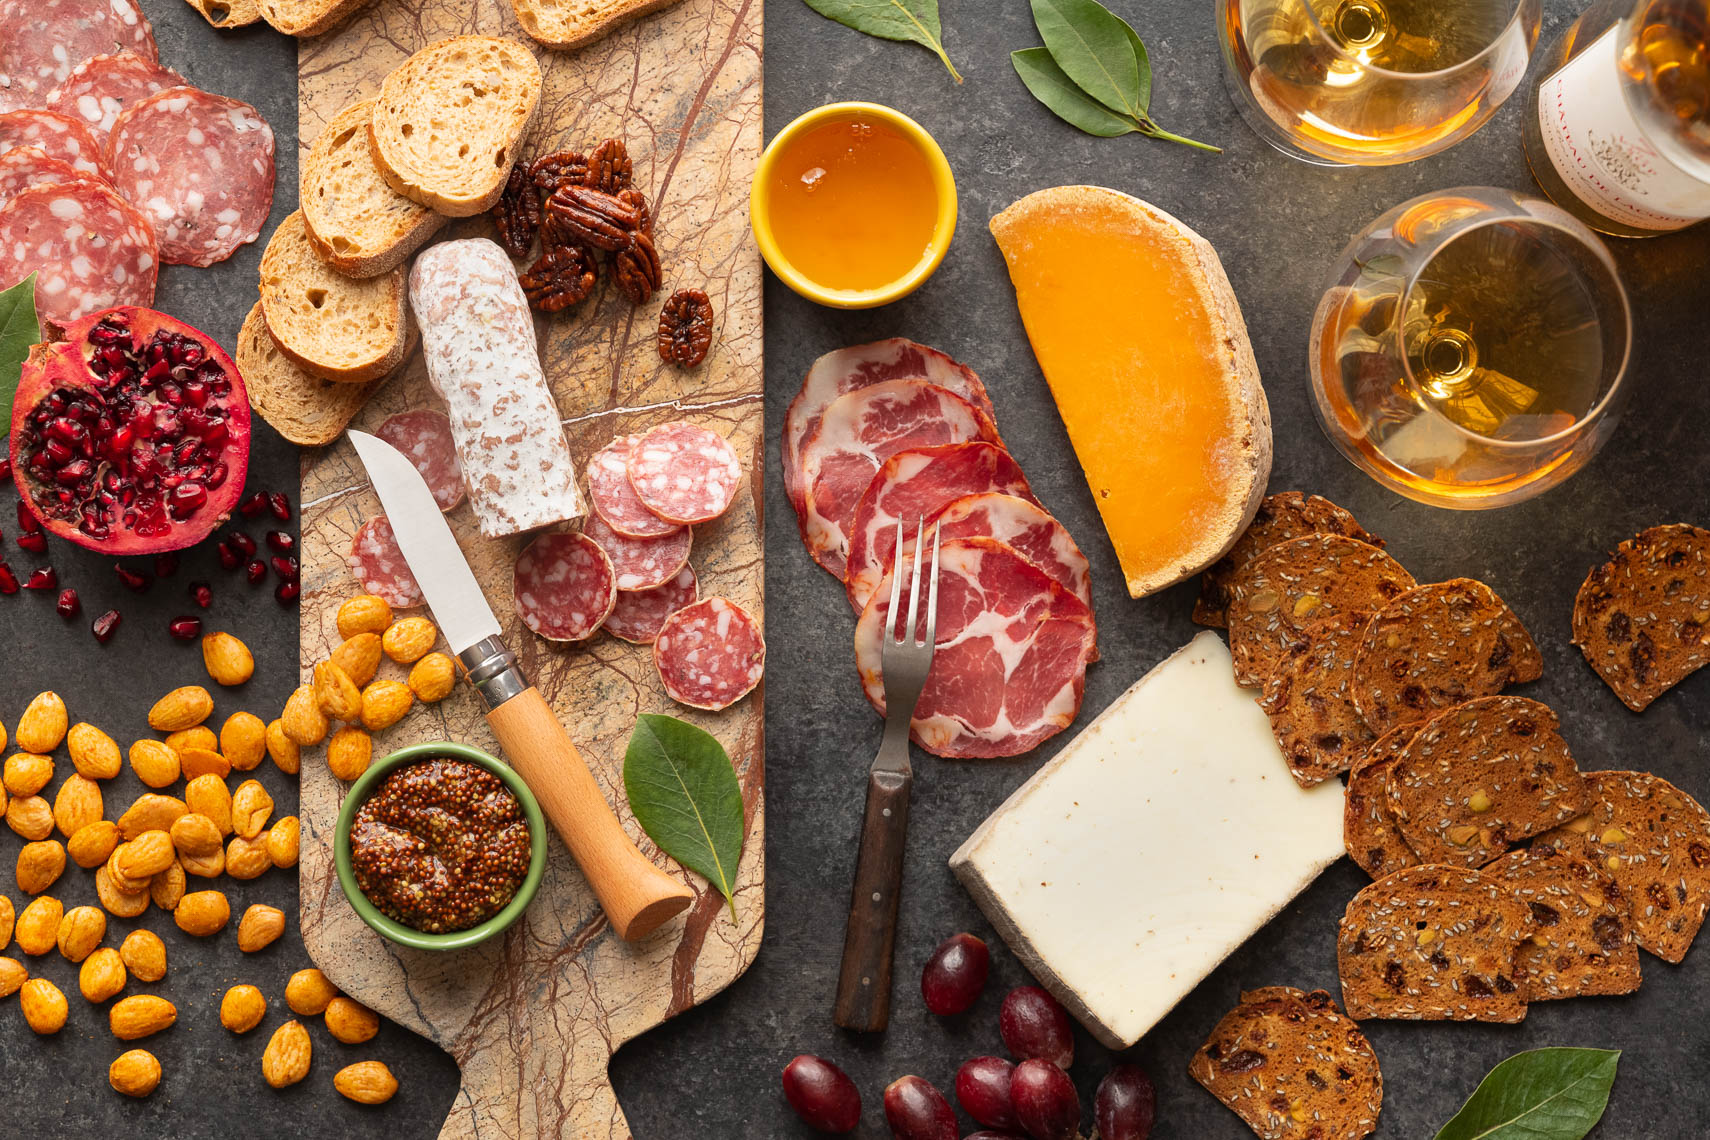 Charcuterie & Cheese - Food Photographer Philadelphia & Lehigh Valley, PA